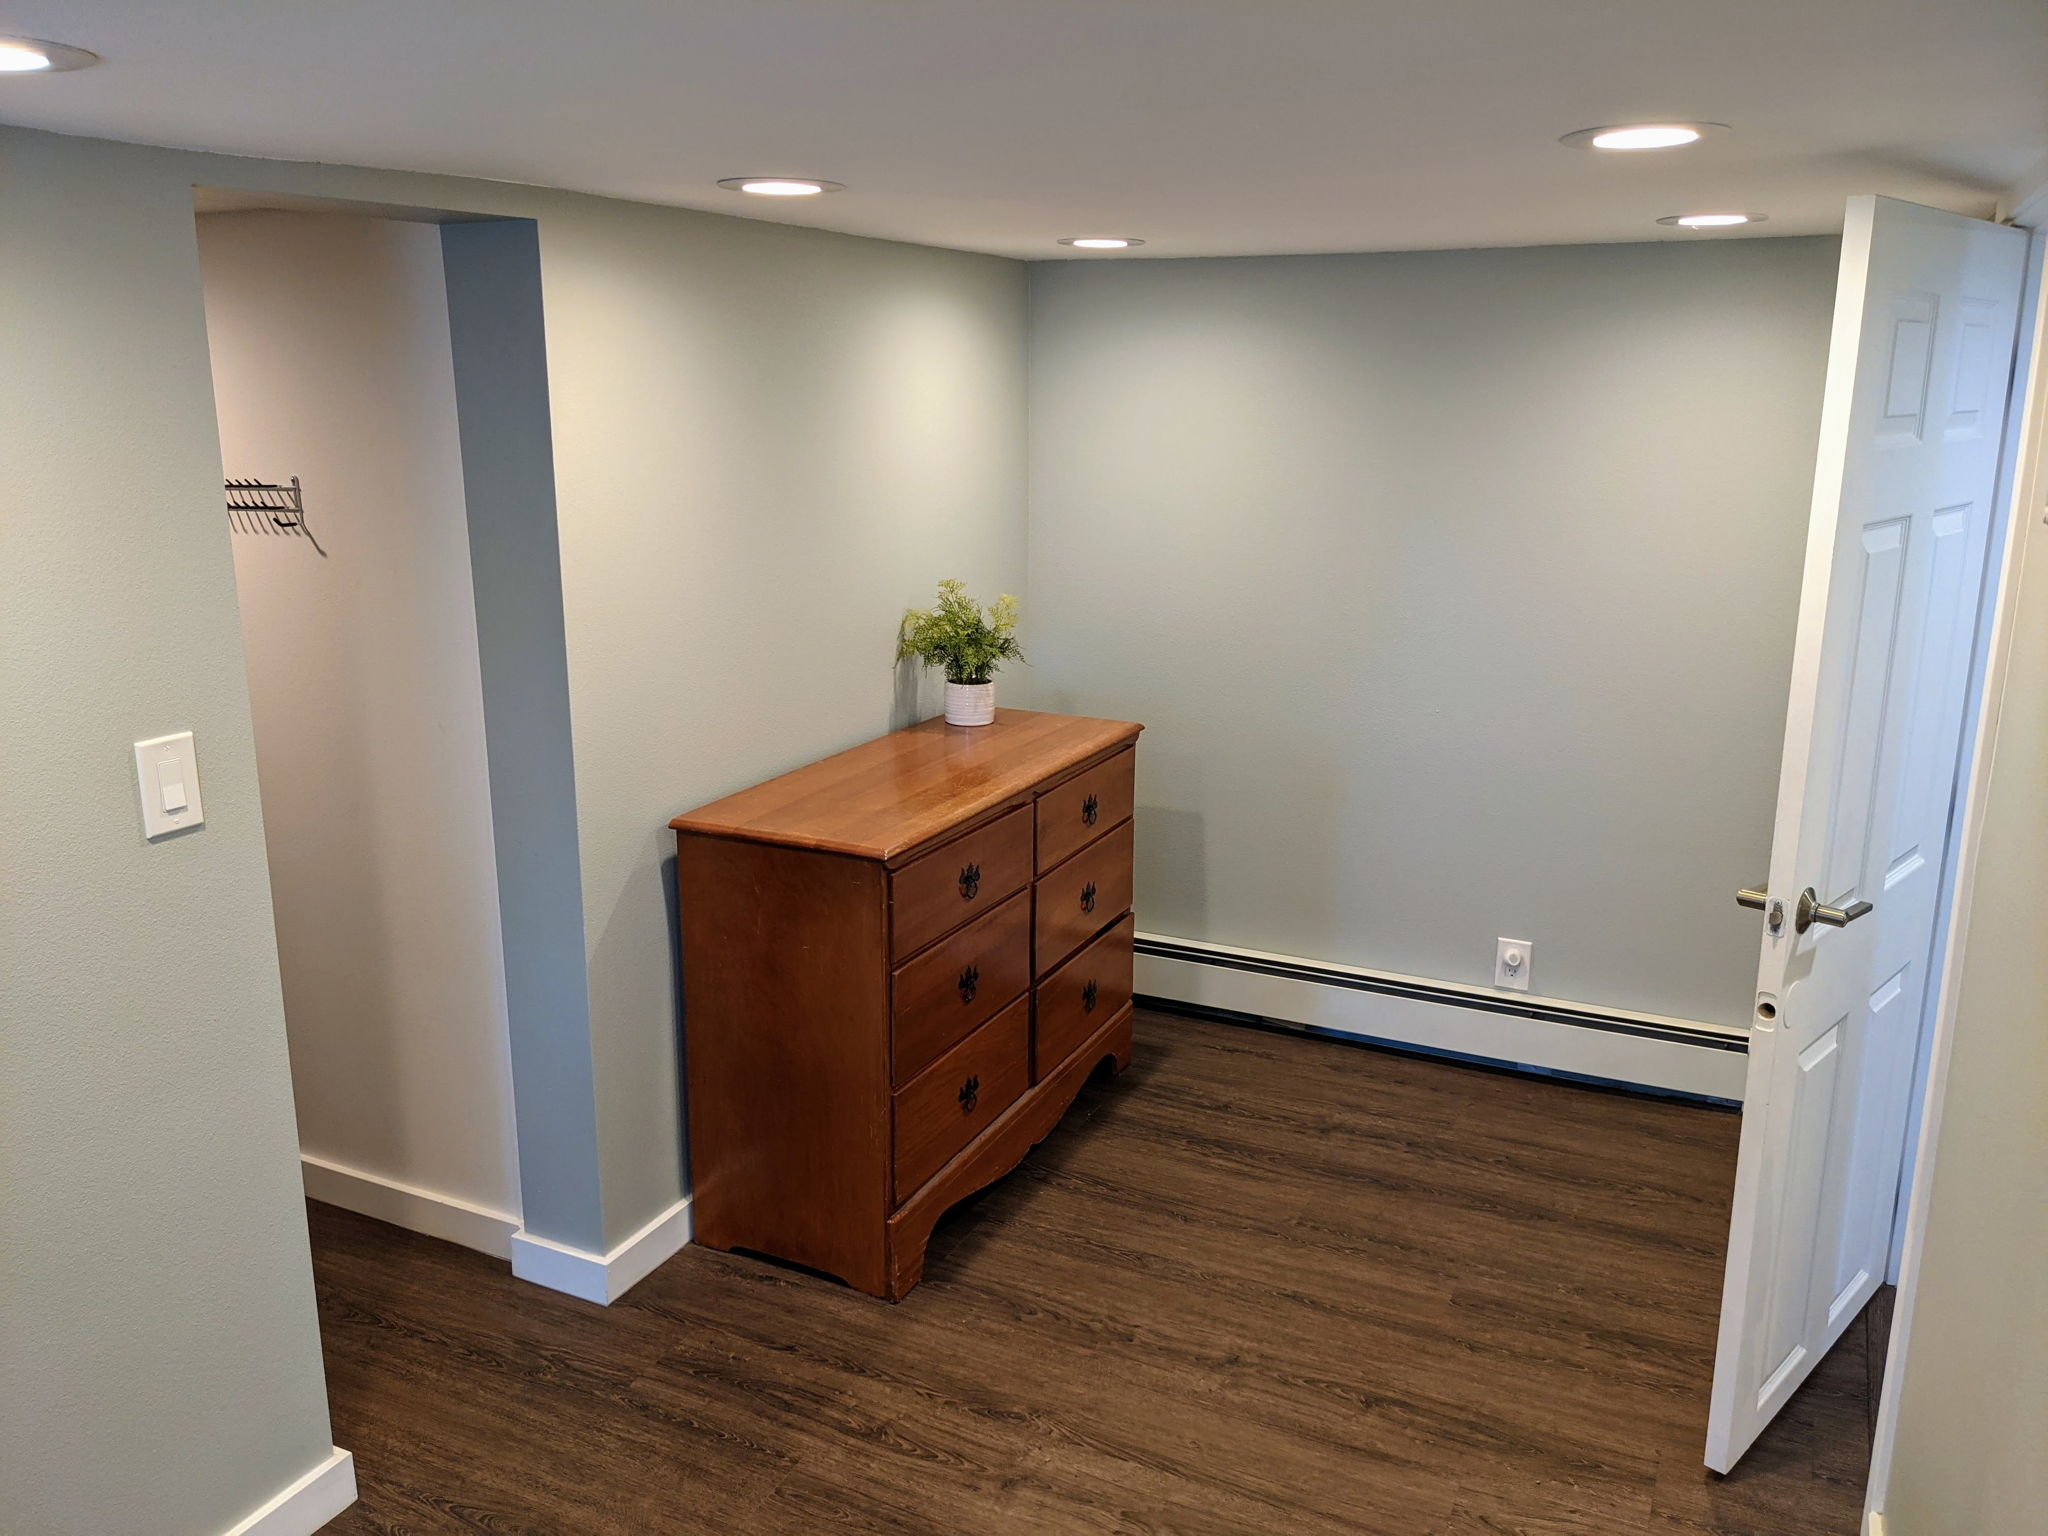 Spacious Primary Bedroom with Room for Dressers, Desk, or Reading nook